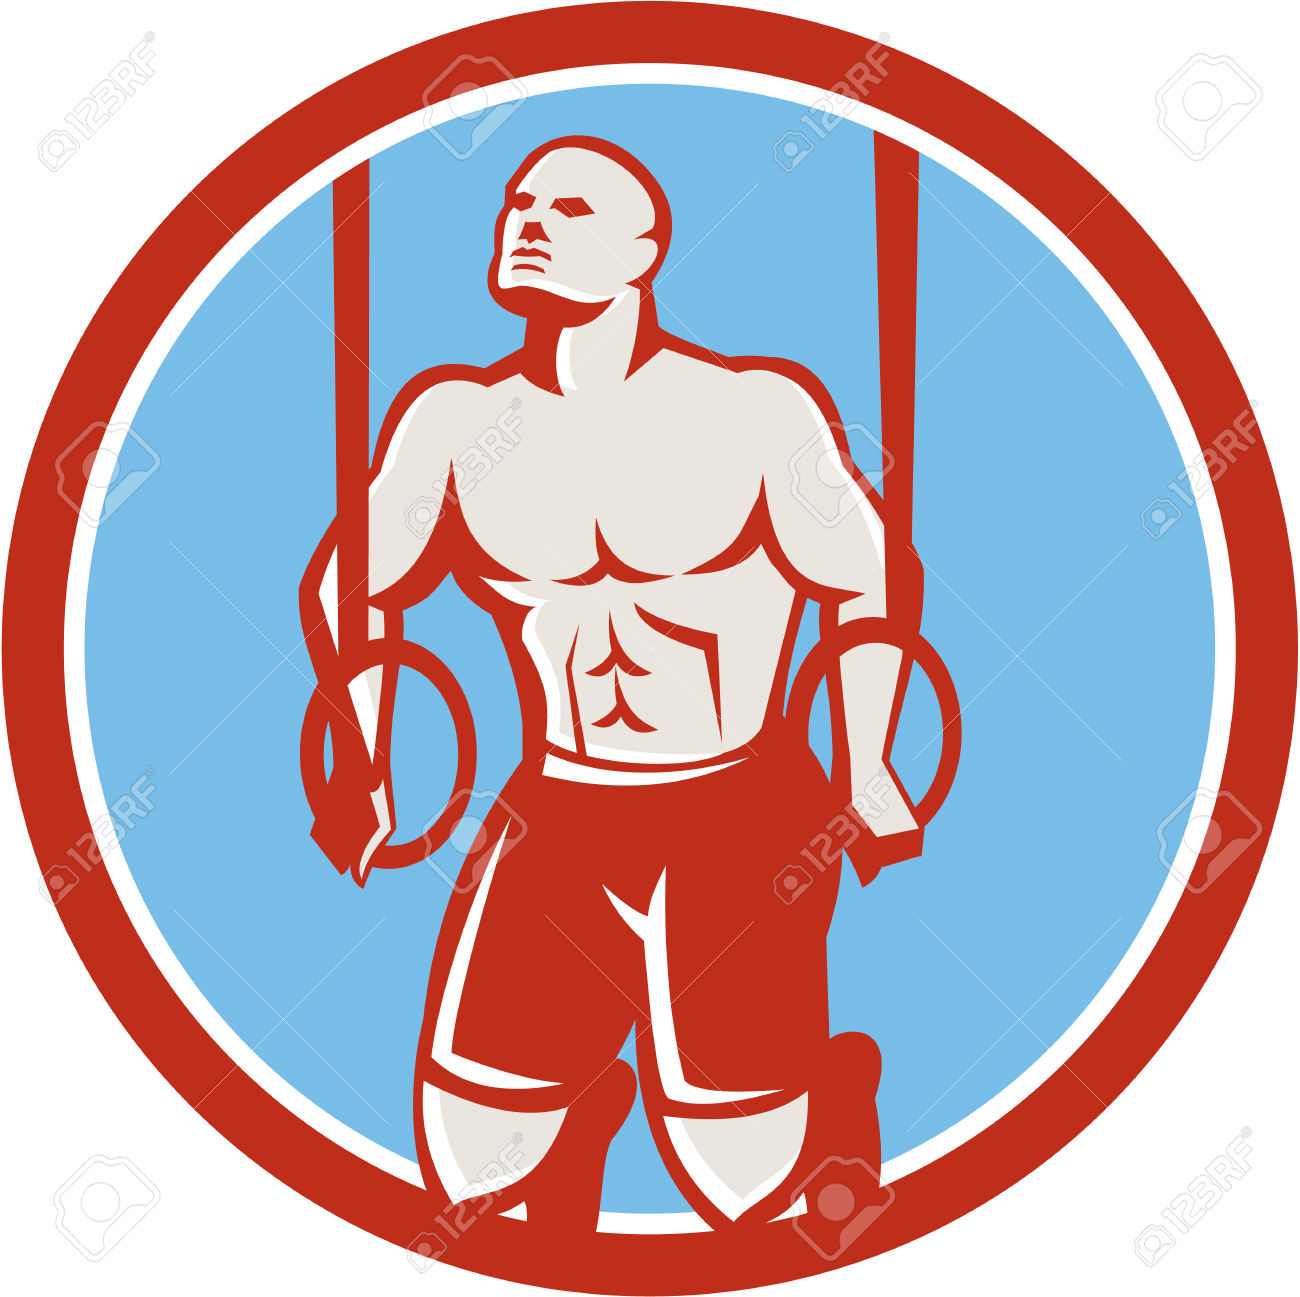 Illustration Of A Crossfit Athlete Body Weight Exercise Hanging.